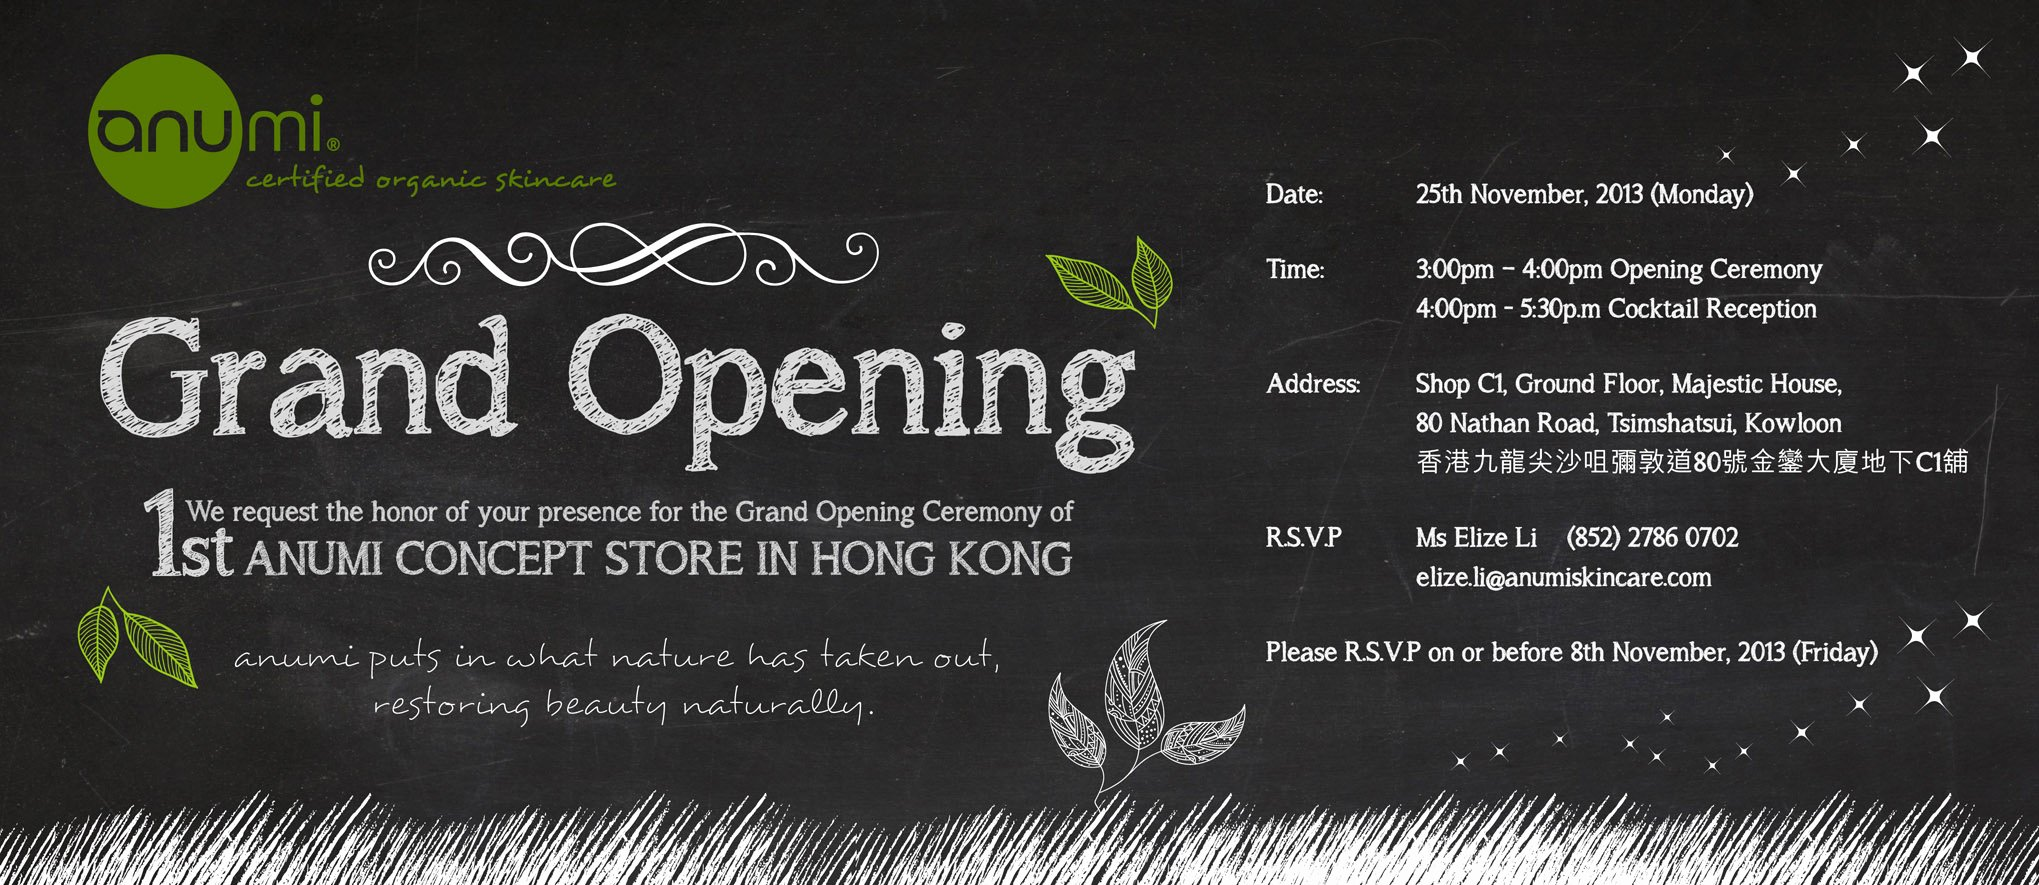 Grand Opening Invitation Template Beautiful Grand Opening Invitation Templates